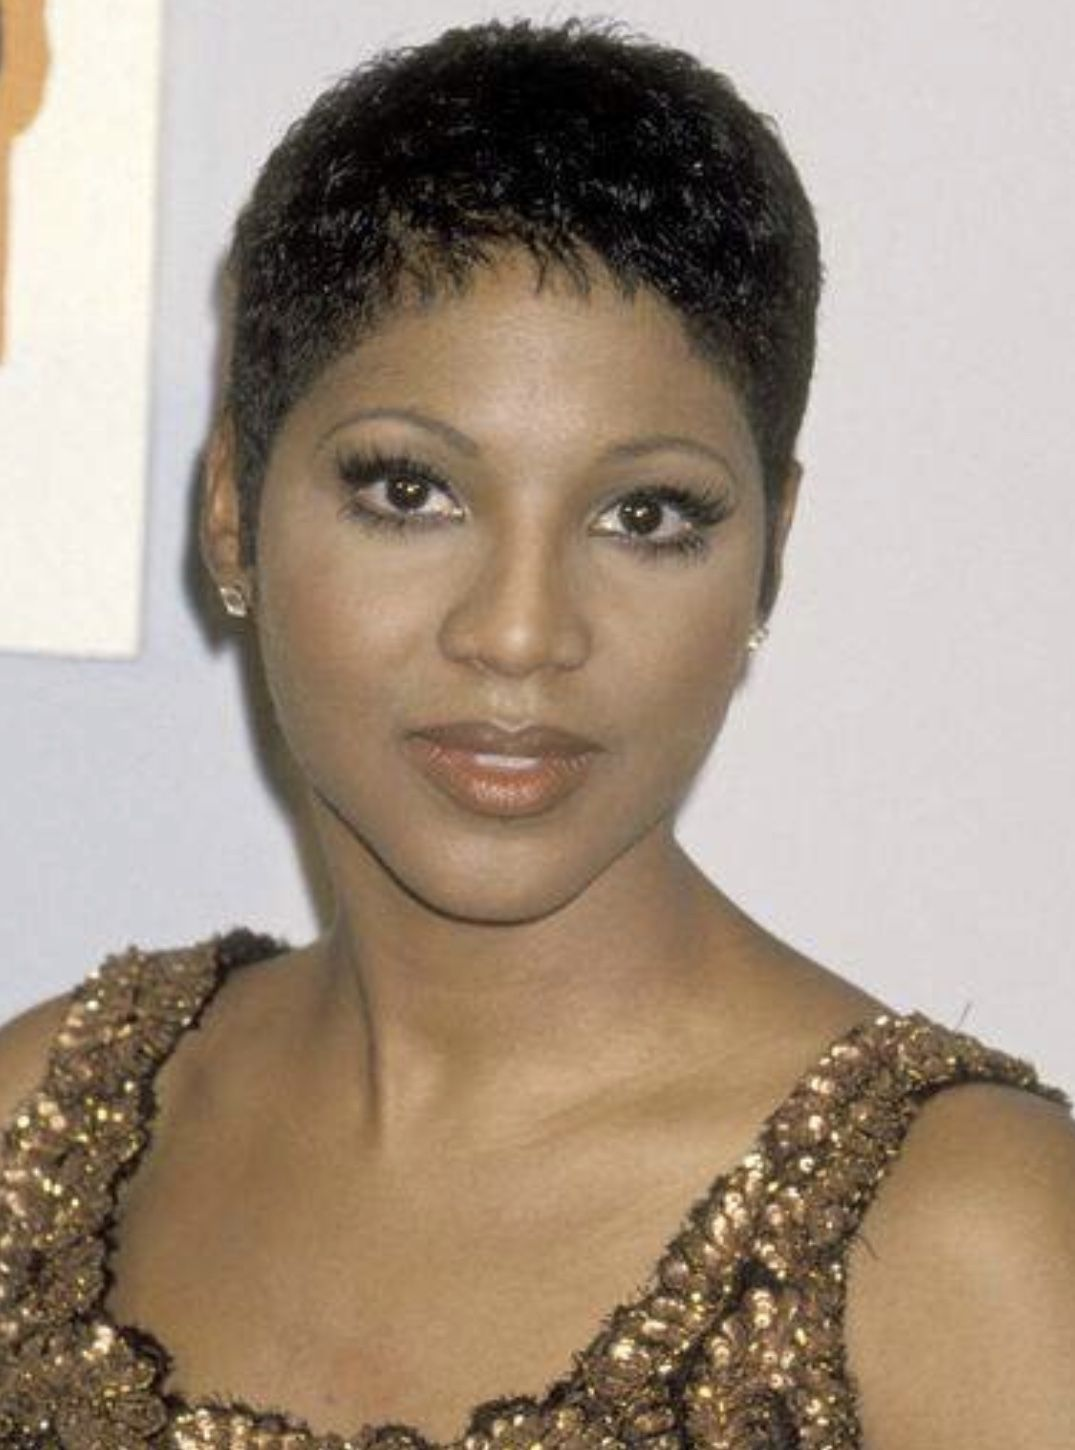 Pin by Jazz on toni braxton  Hot hair styles, Hair styles, Short